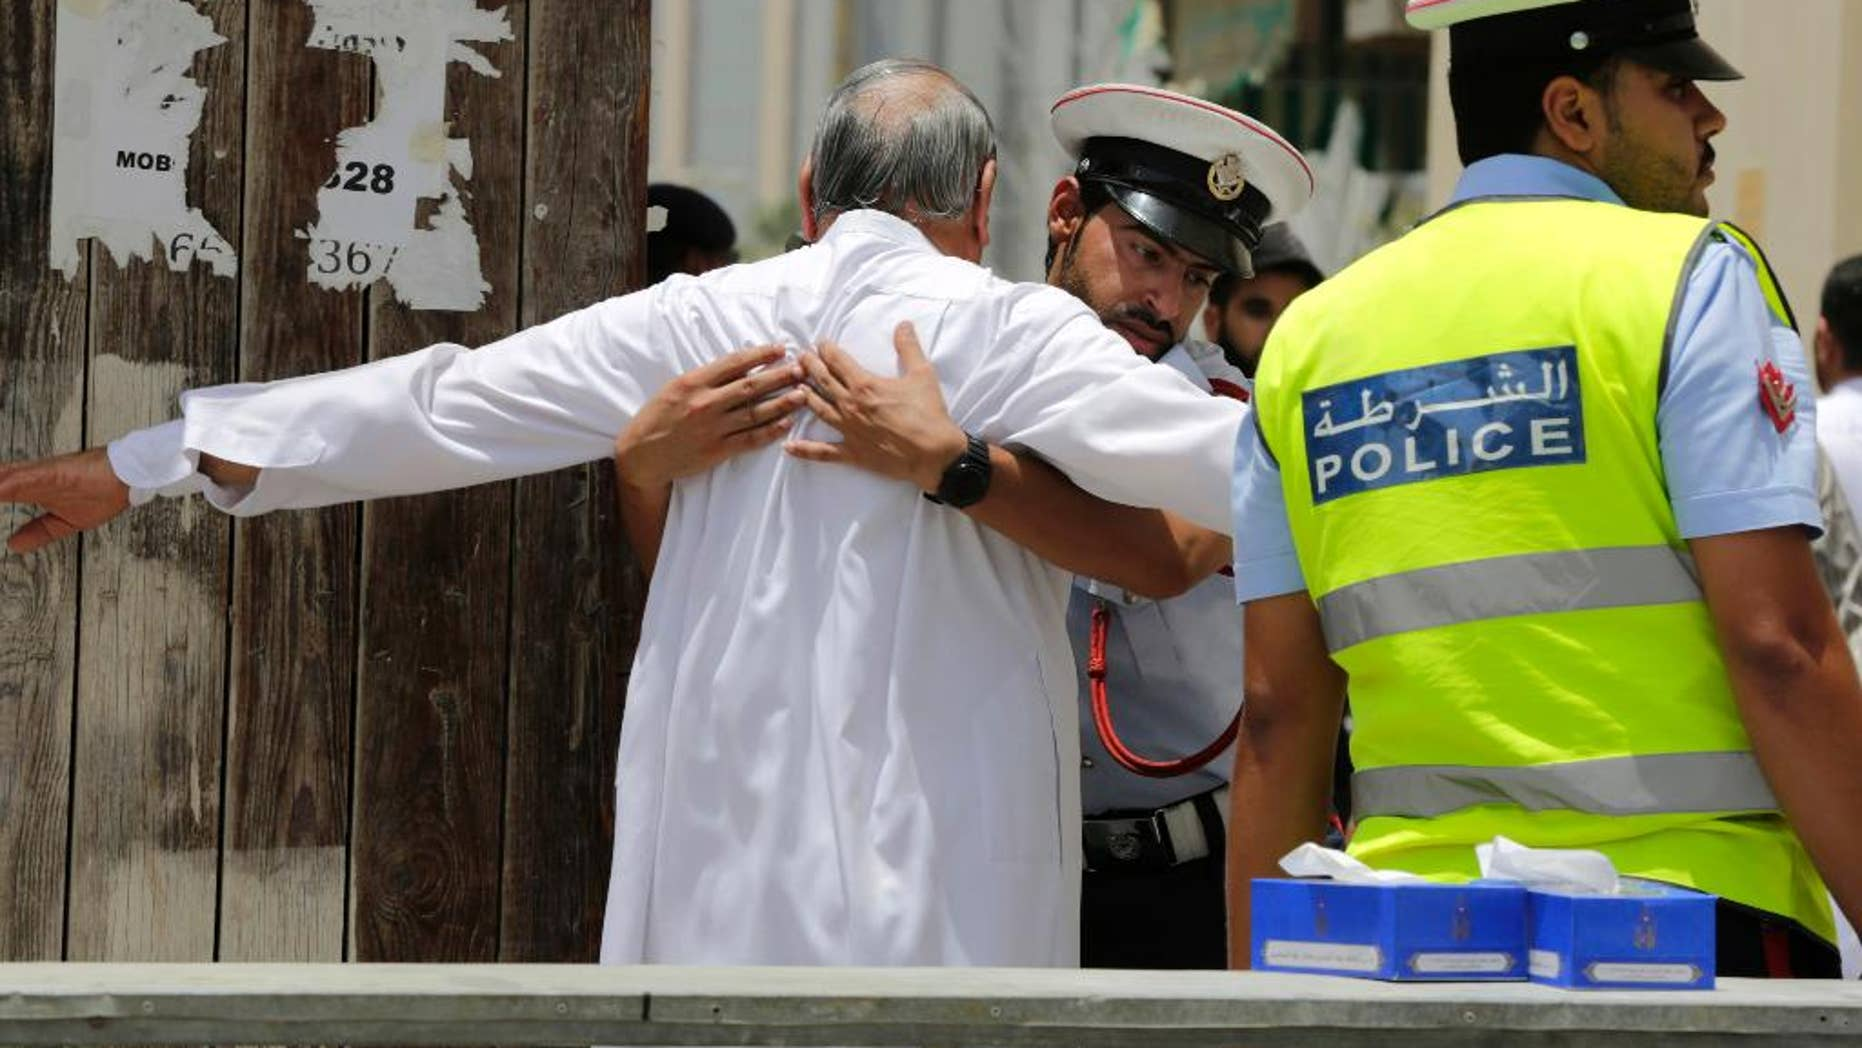 """FILE- In this Friday, June 5, 2015 file photo, Bahraini community police officers search worshipers outside a Shiite Muslim mosque ahead of mid-day prayers in Manama. Bahraini authorities say two policemen have been killed and many injured in a bomb attack south of the capital. The Interior Ministry said on its Twitter feed on Tuesday, July 28, 2015 that the officers were killed in a """"terror blast"""" in the largely Shiite community of Sitra. (AP Photo/Hasan Jamali, File)"""